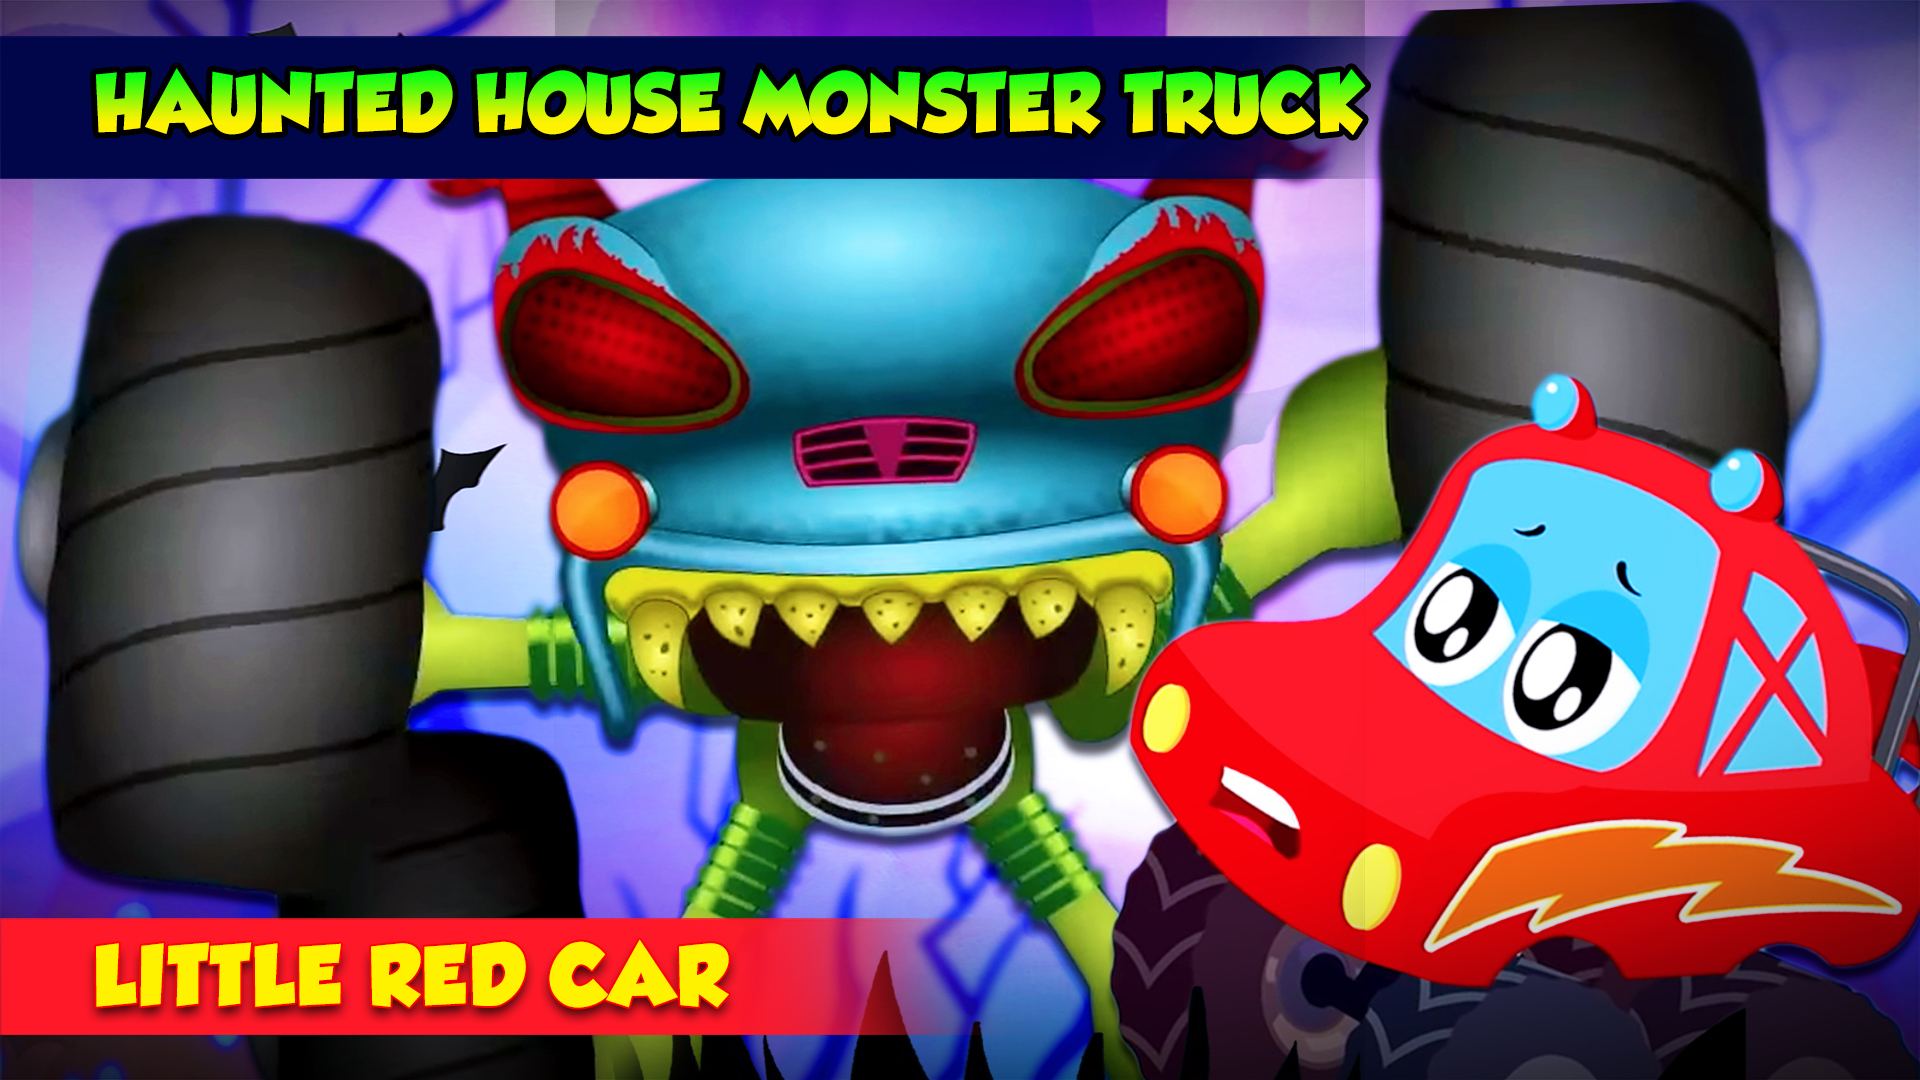 Haunted House Monster Truck Little Red Car